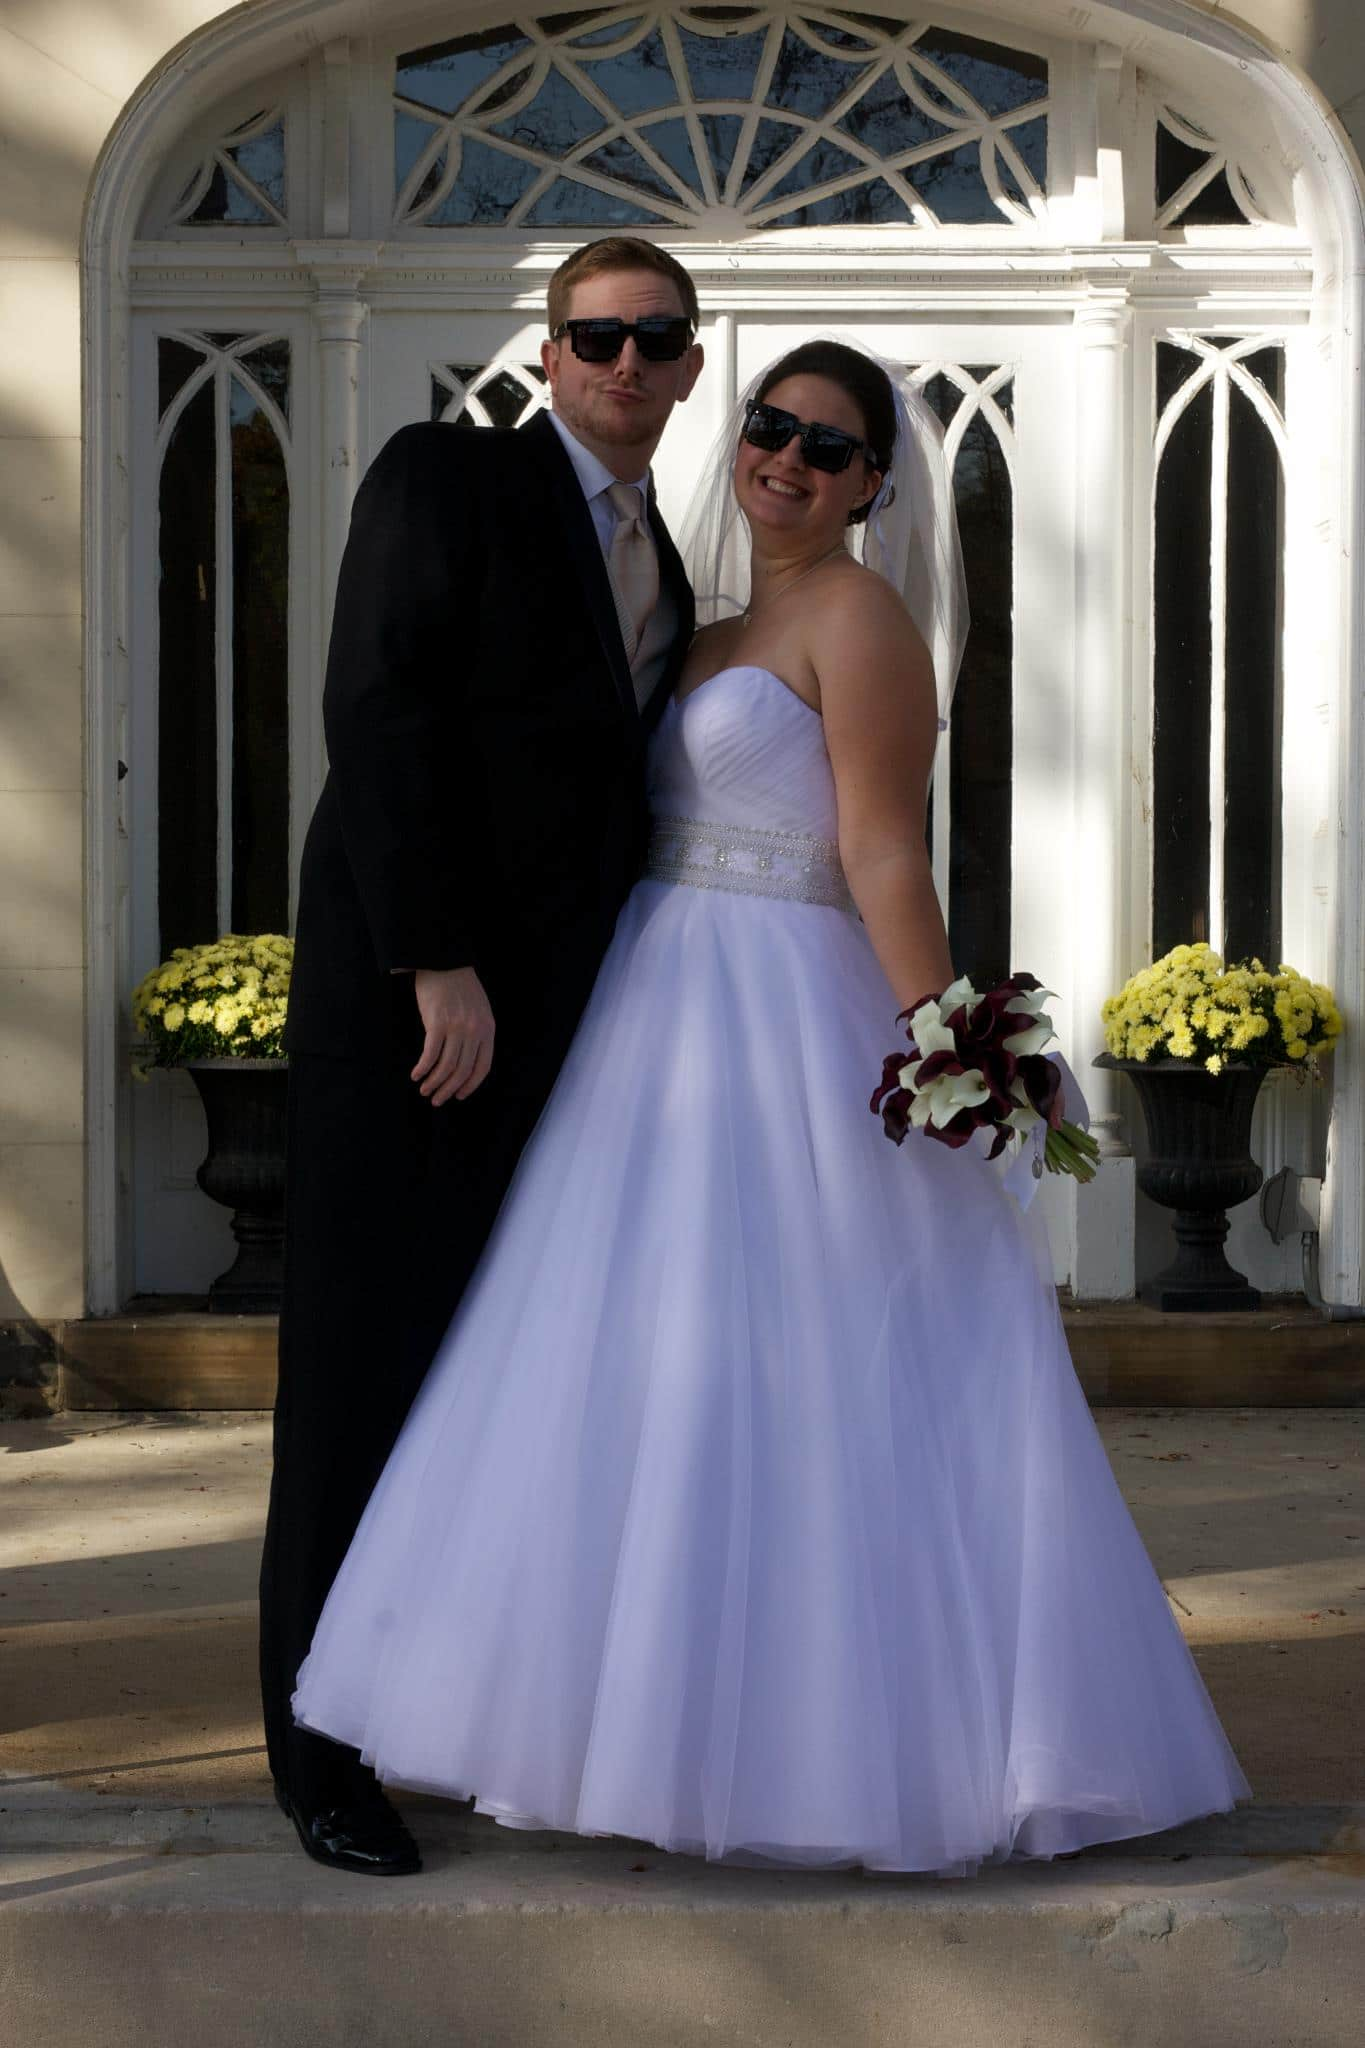 Christine Kirby Bride and groom with sunglasses